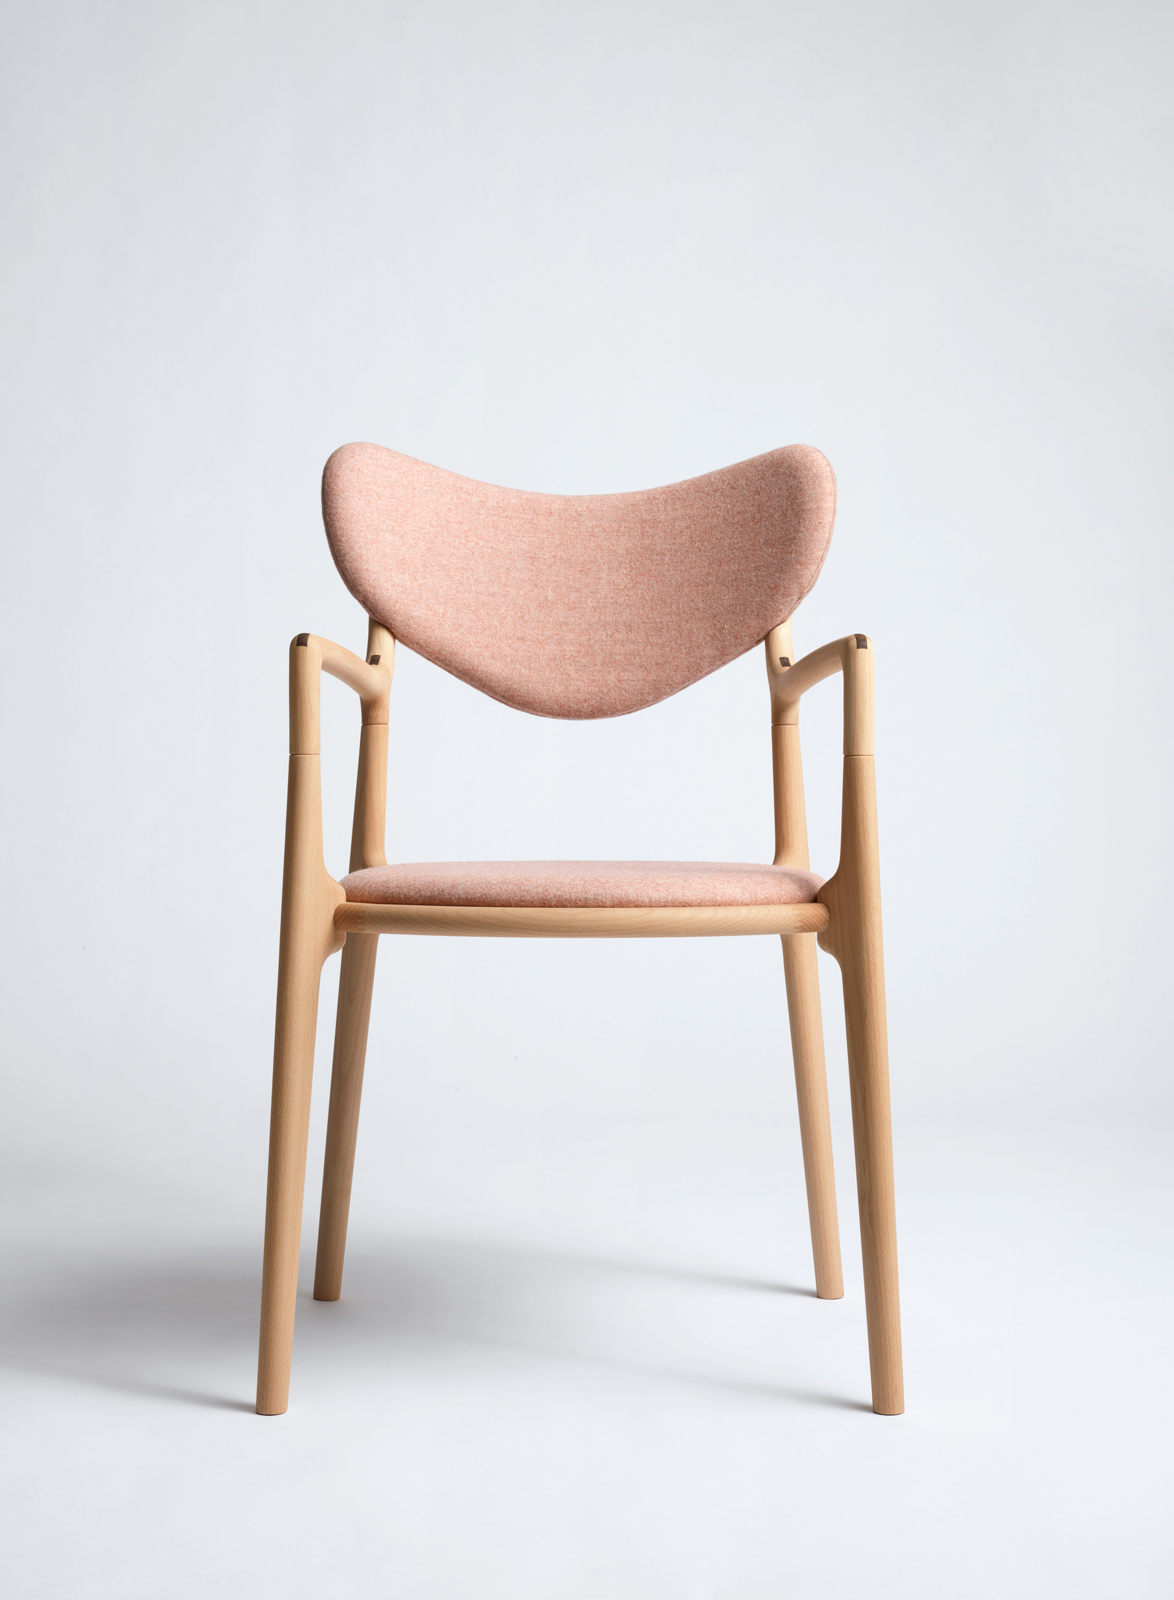 Salon_Chair_Beech_Oil_Camira_Fabric_Asger_Soelberg_06.jpg